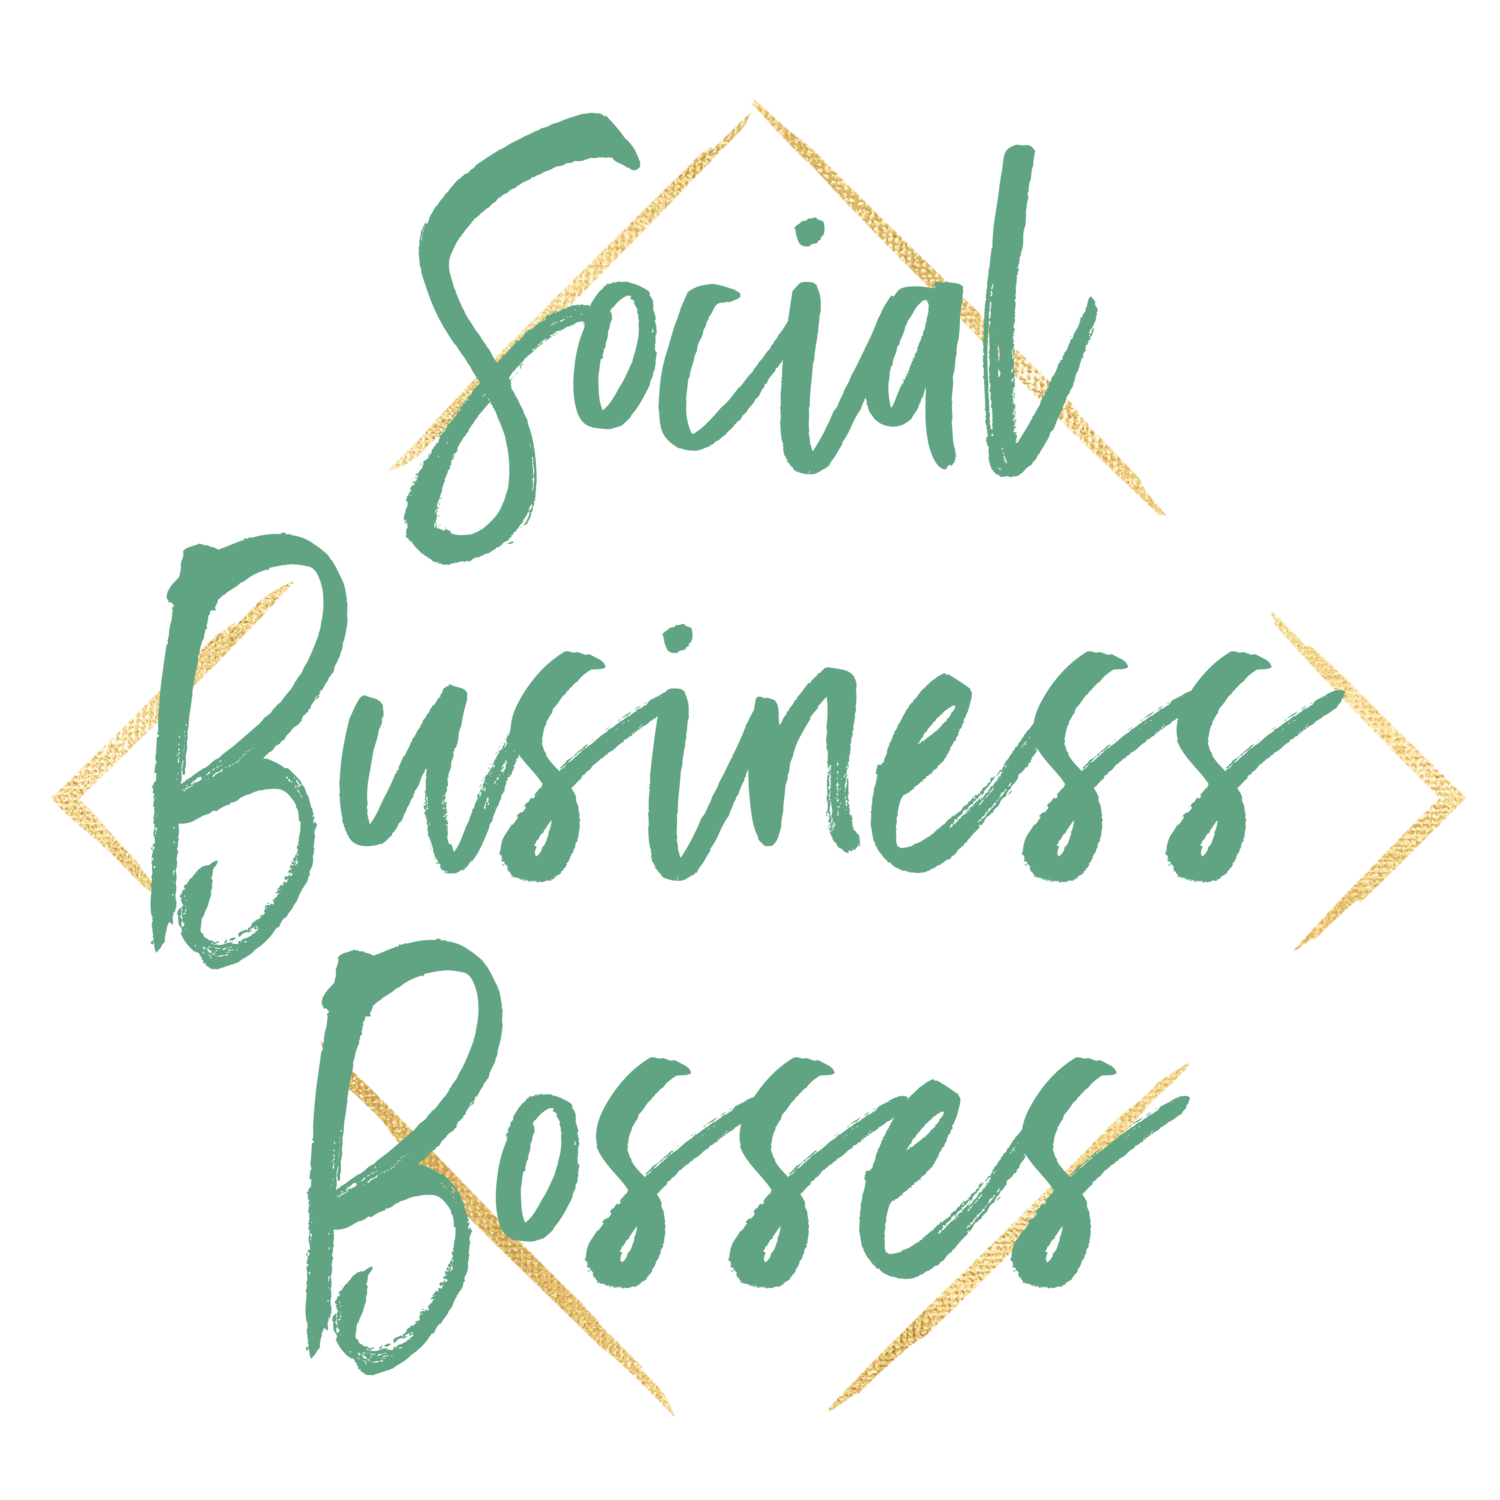 Social Business Bosses